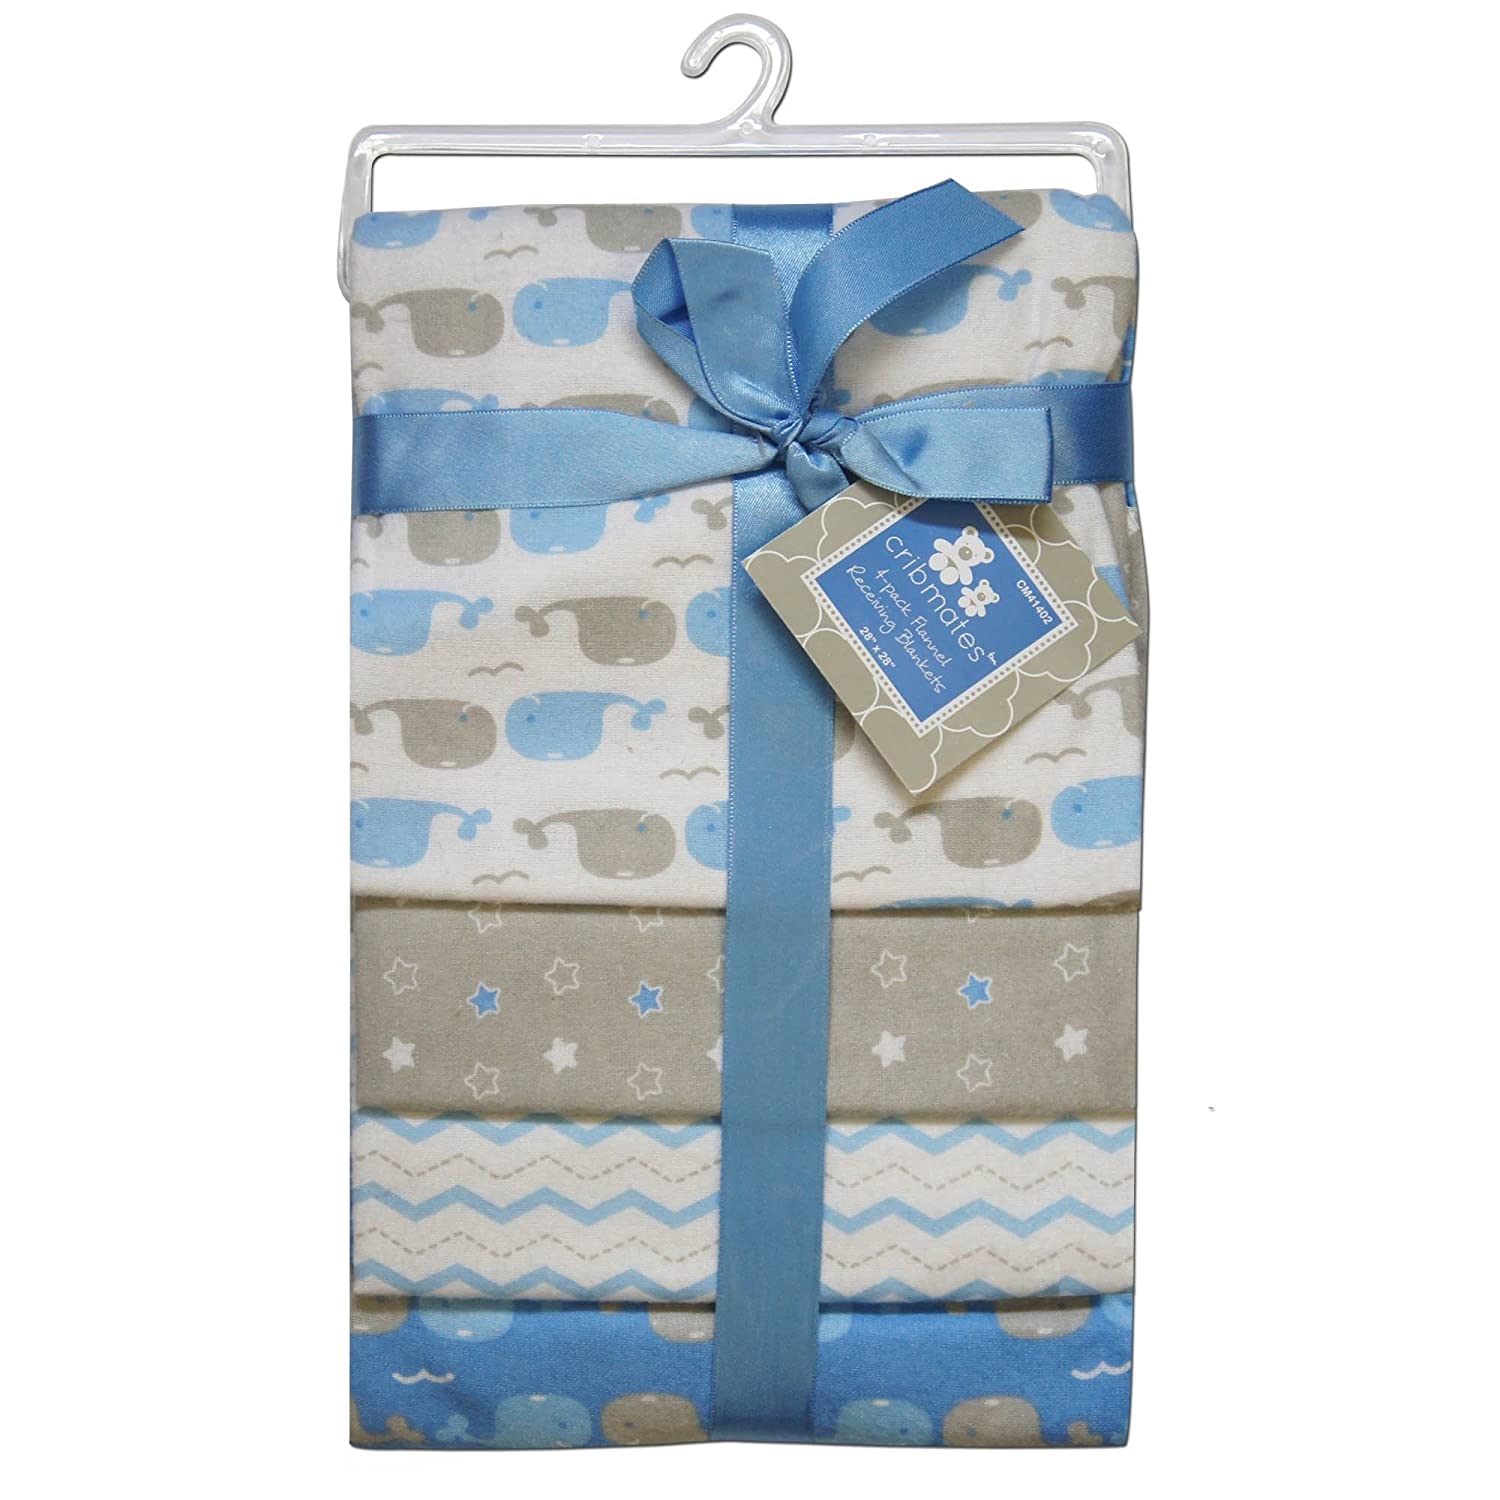 CRIBMATES Petite L'Amour Receiving Blankets Baby Boys Whale Pals Quest Products Baby REGE41402